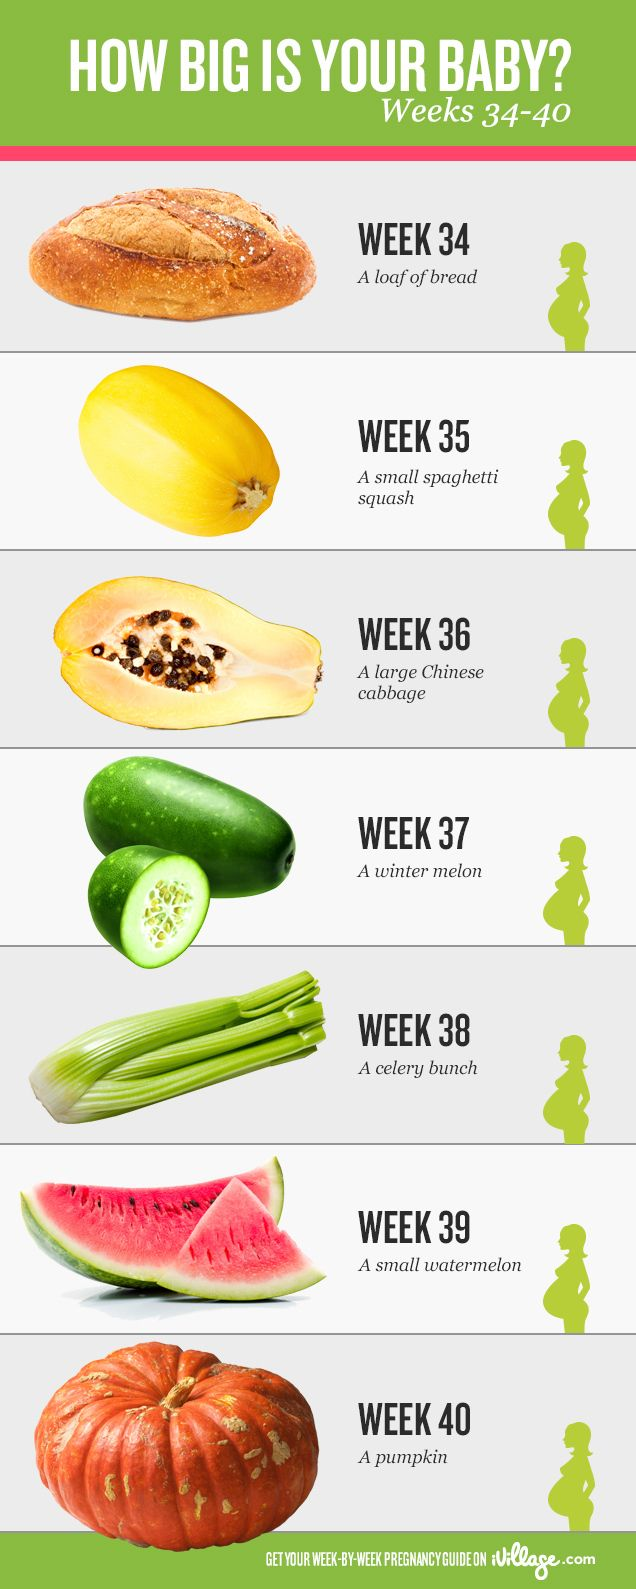 133 best Pregnancy week by week images on Pinterest ...